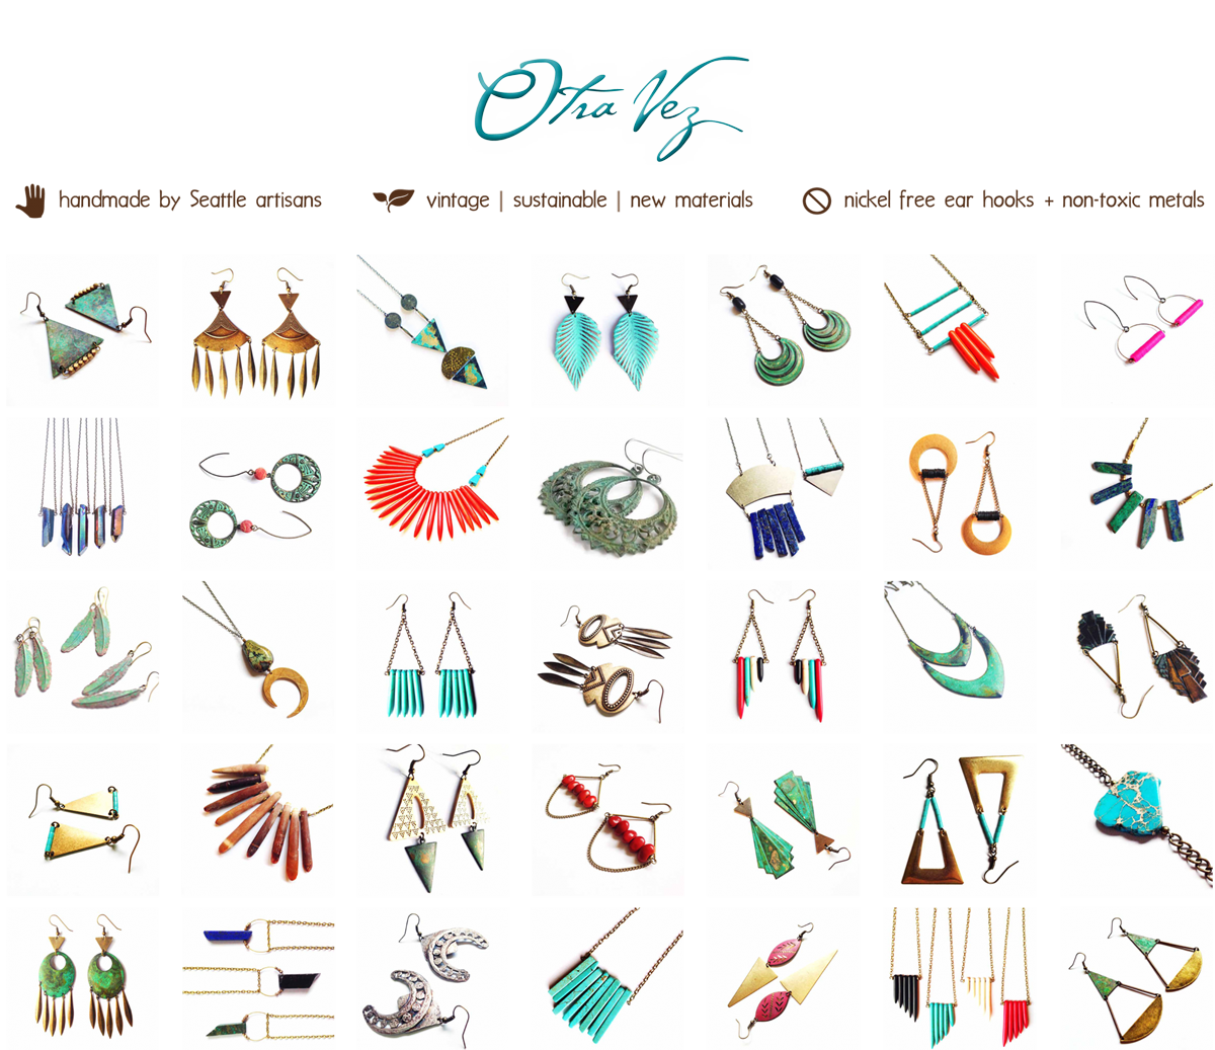 Otra-Vez-Jewelry-Website-Splash-Page